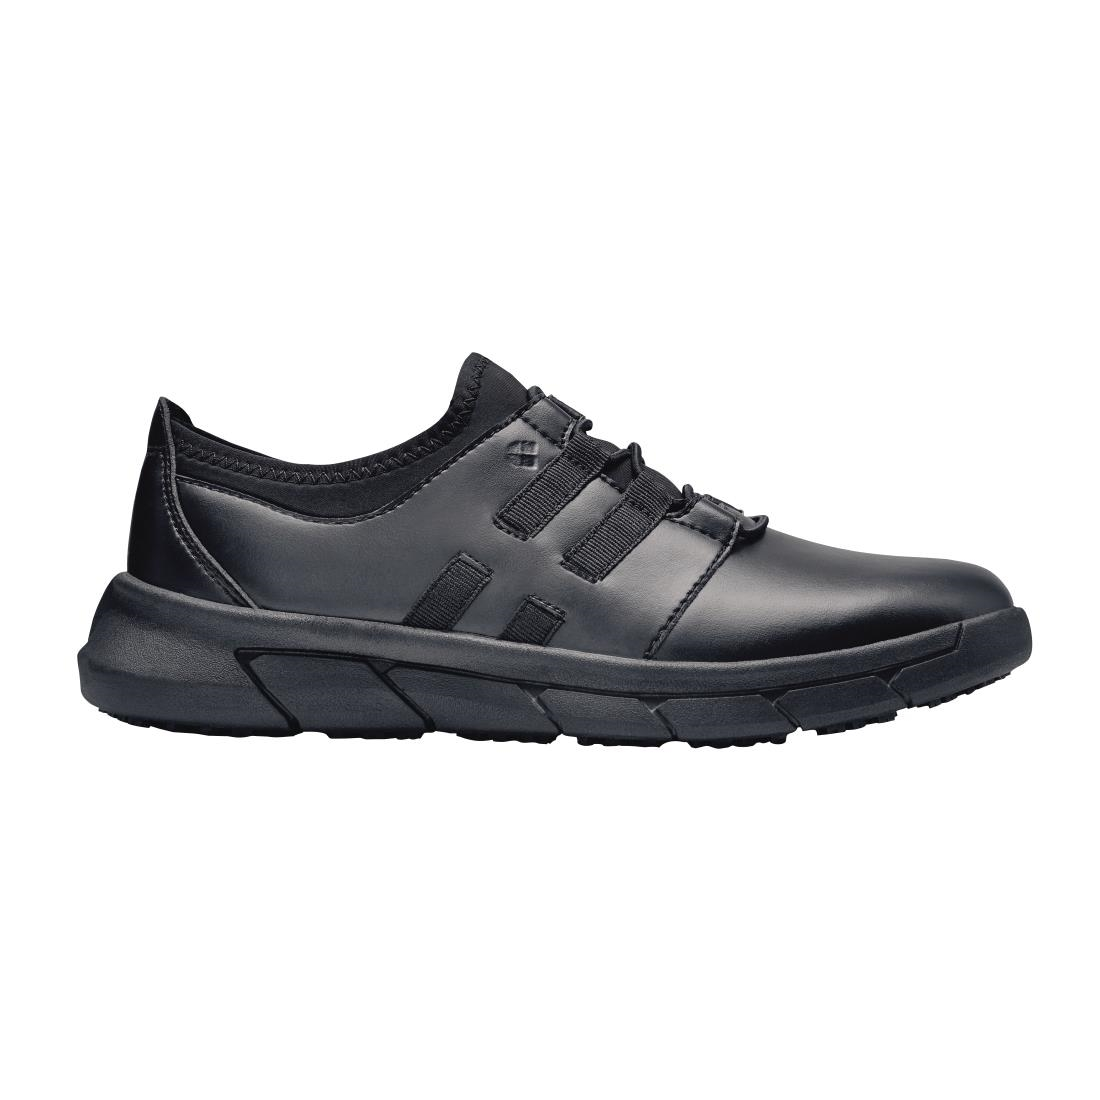 Shoes For Crews Karina Slip On Trainers Black Size 38